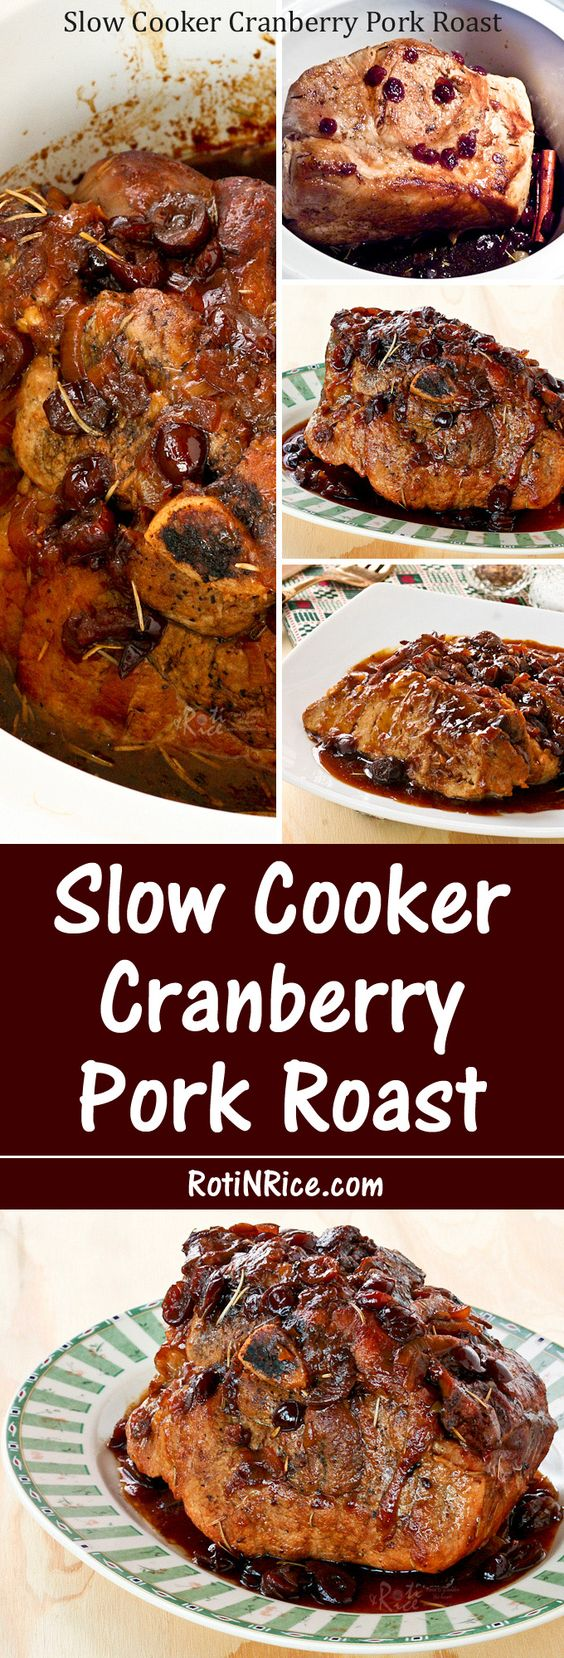 coming home to a perfectly cooked Slow Cooker Cranberry Pork Roast ...